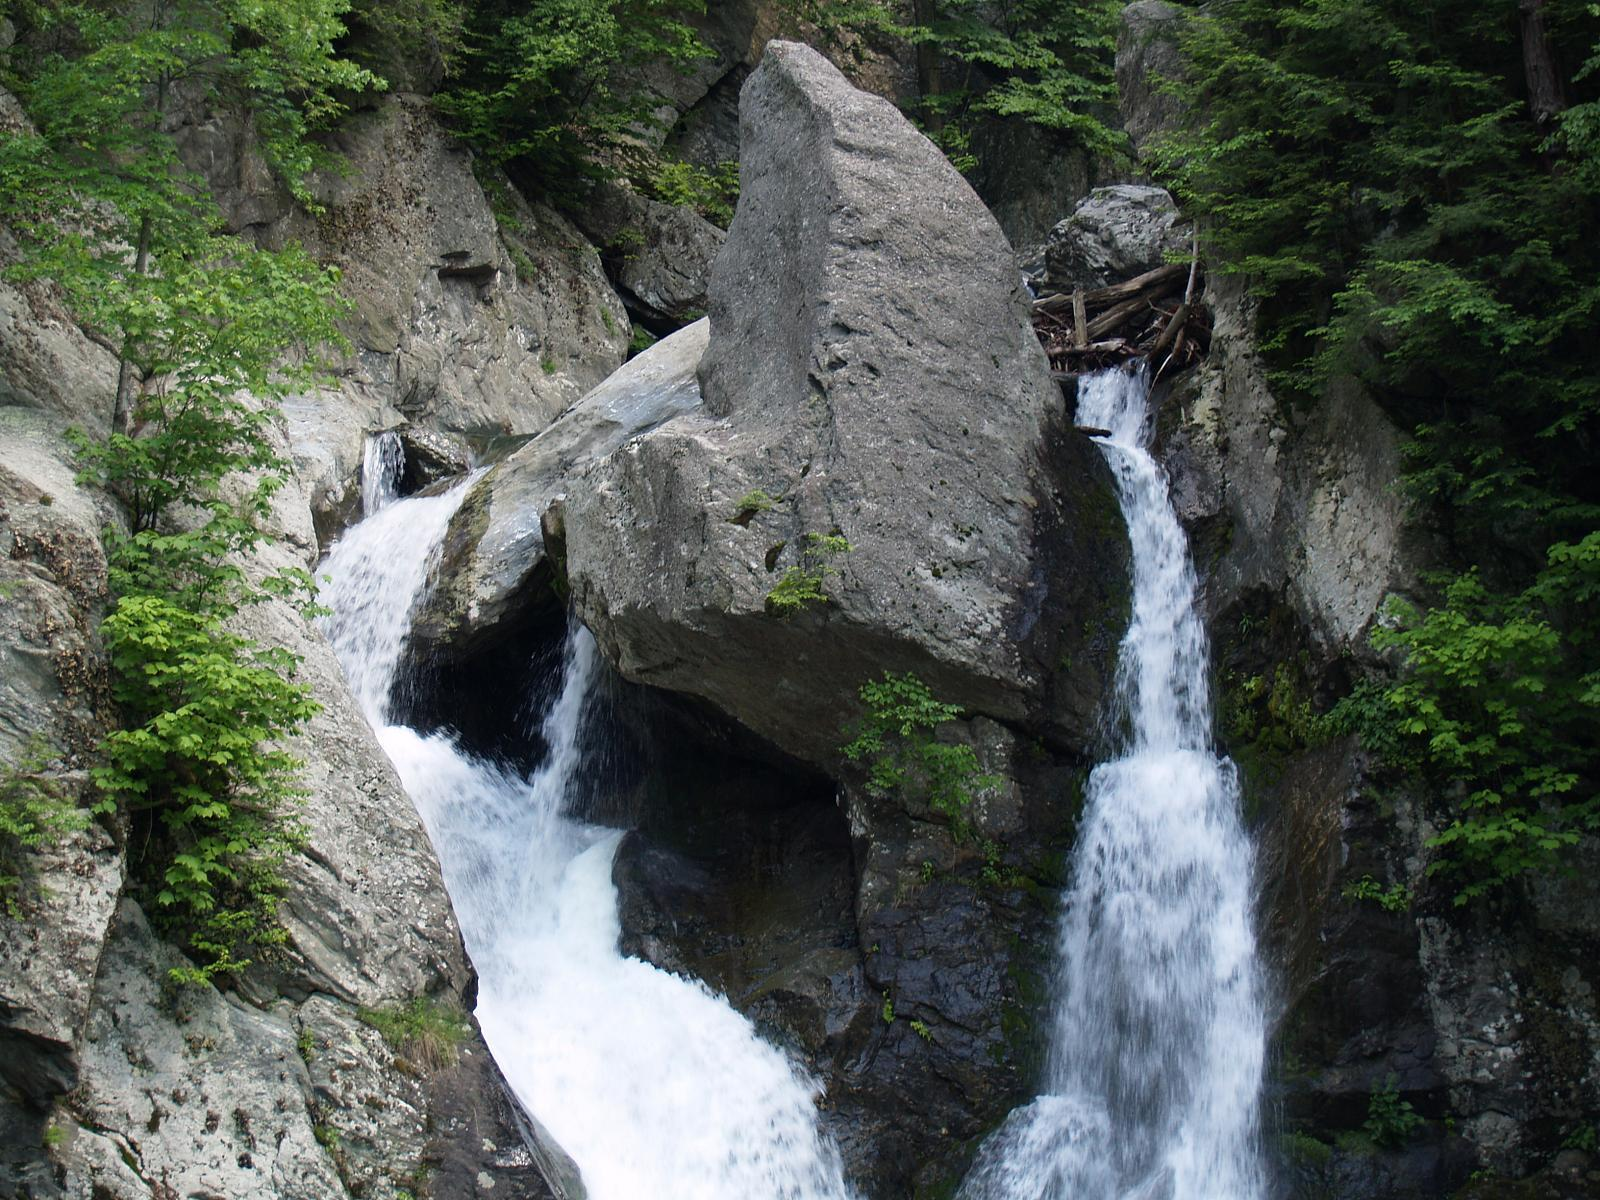 Bash Bish Falls, Mount Washington, MA